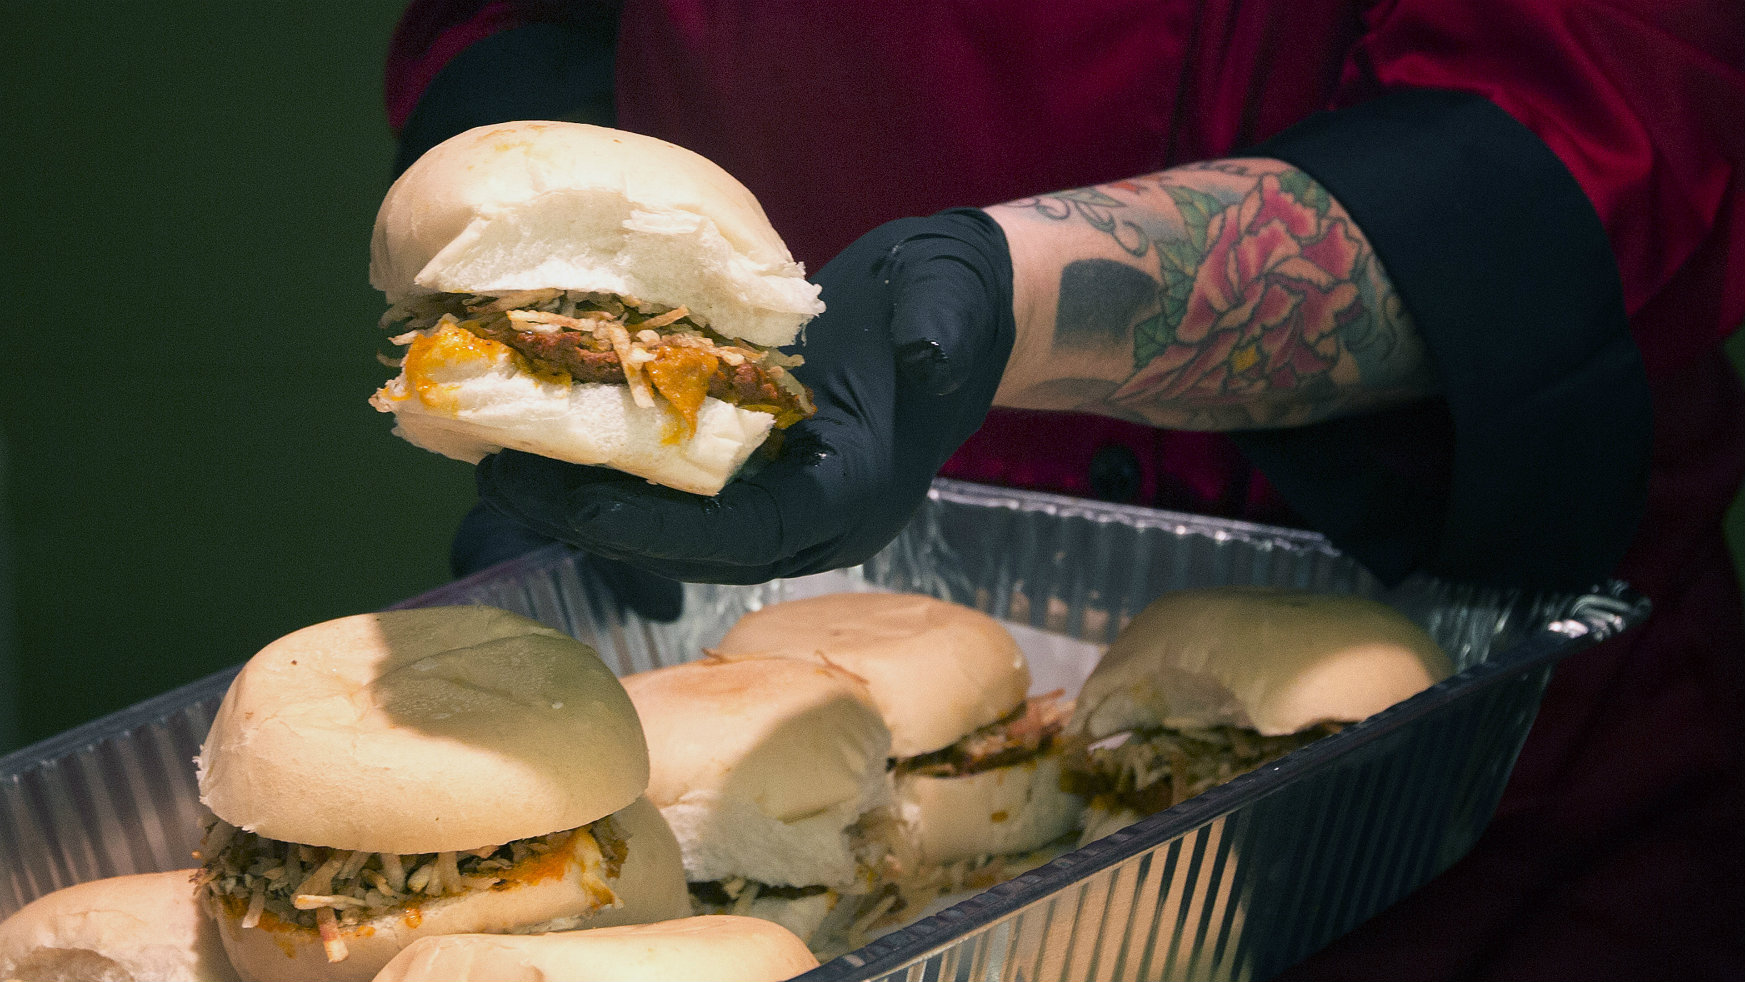 Hamburger served by someone with tatoos